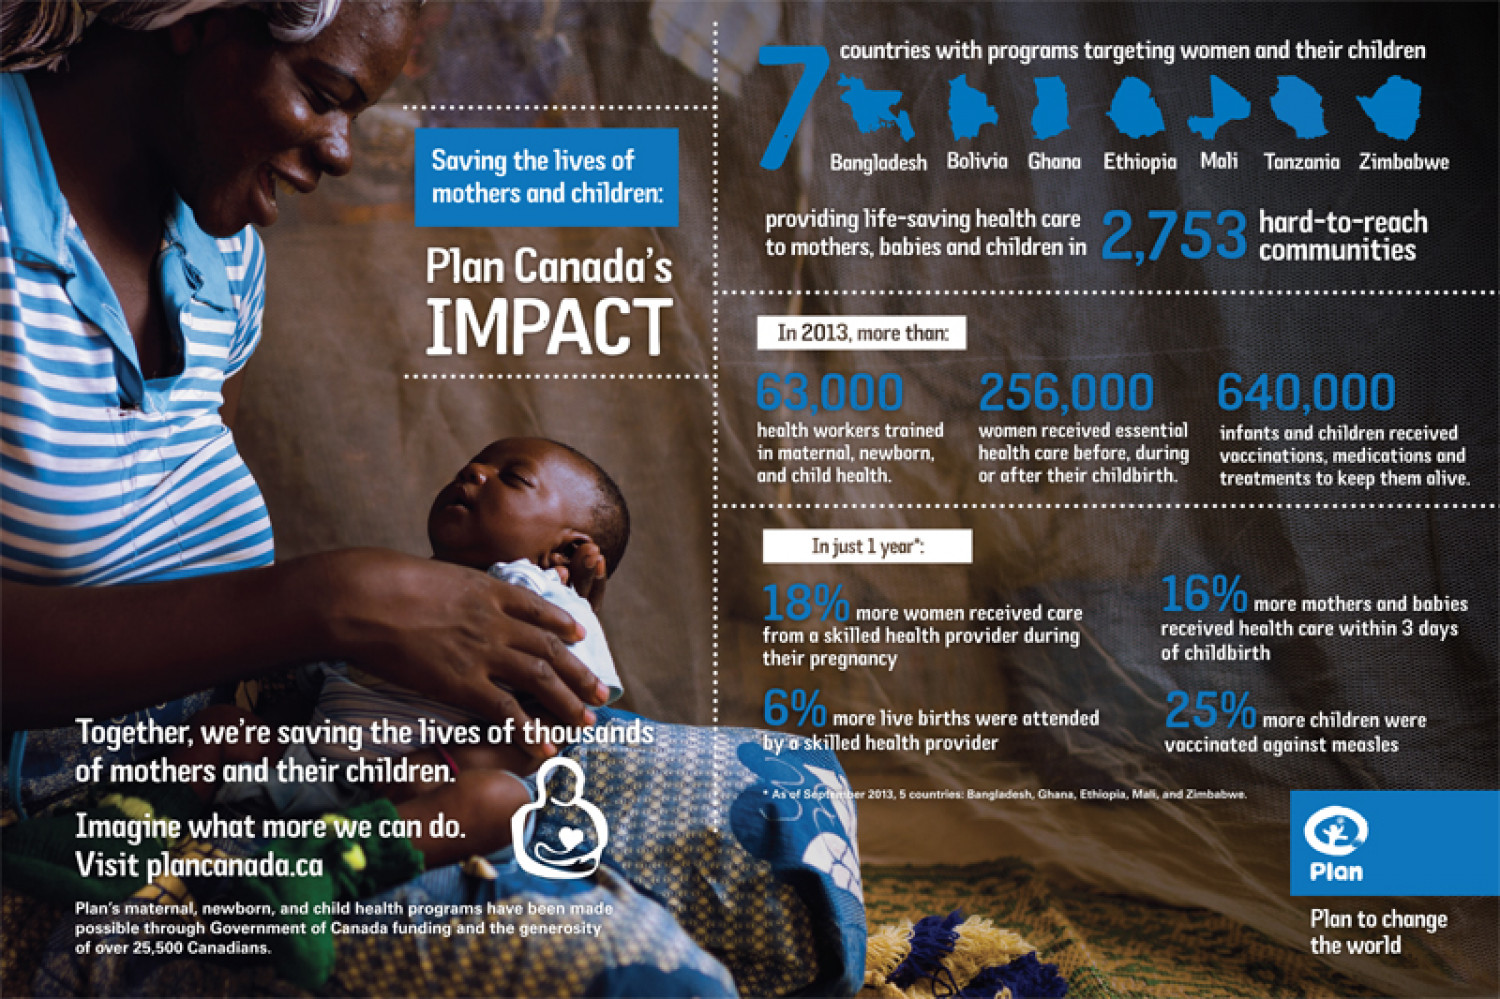 Plan Canada's Impact Infographic